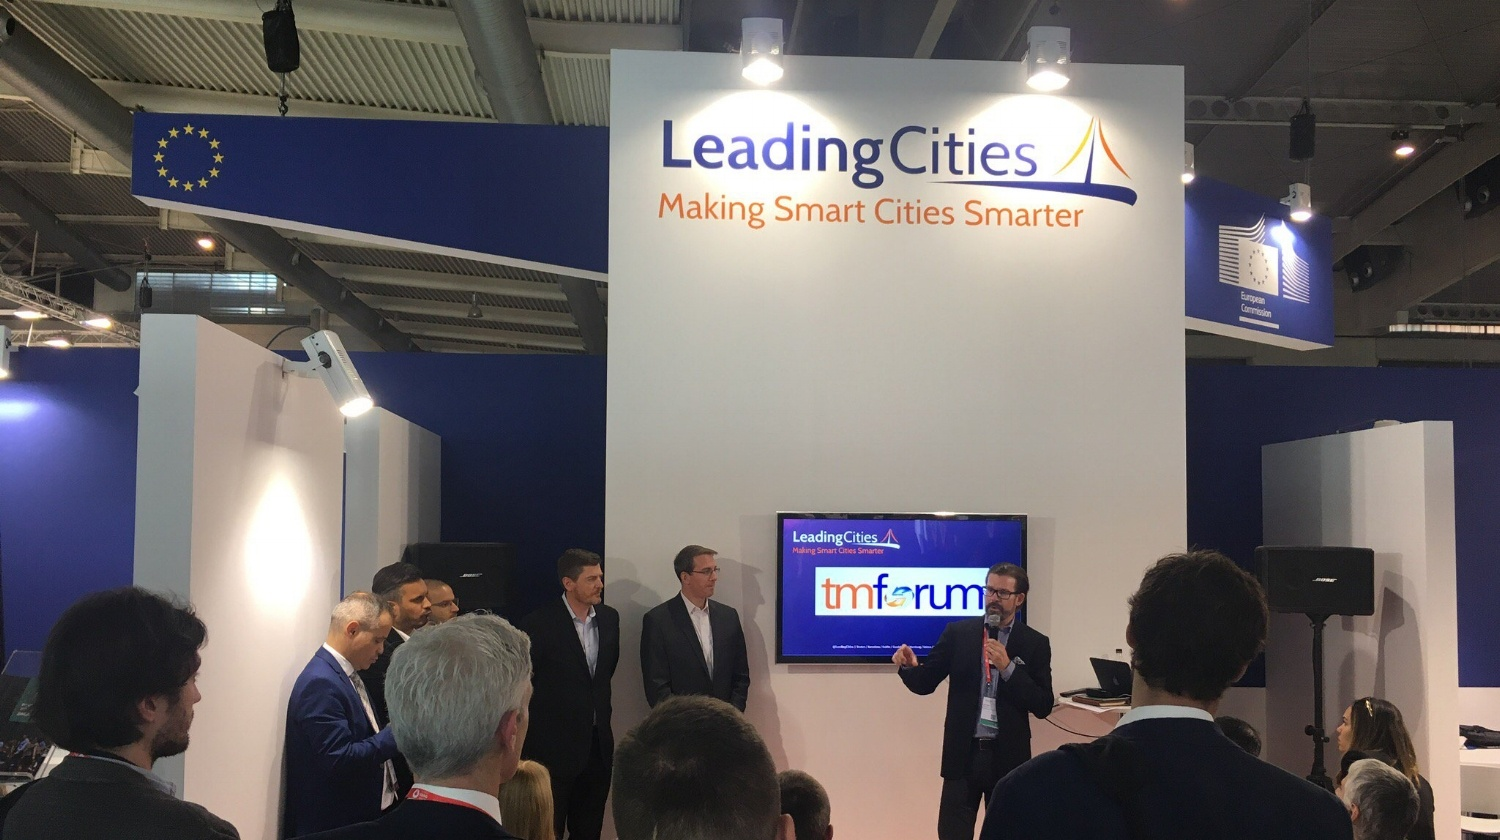 leading-cities-smart-city-expo-2017.jpg